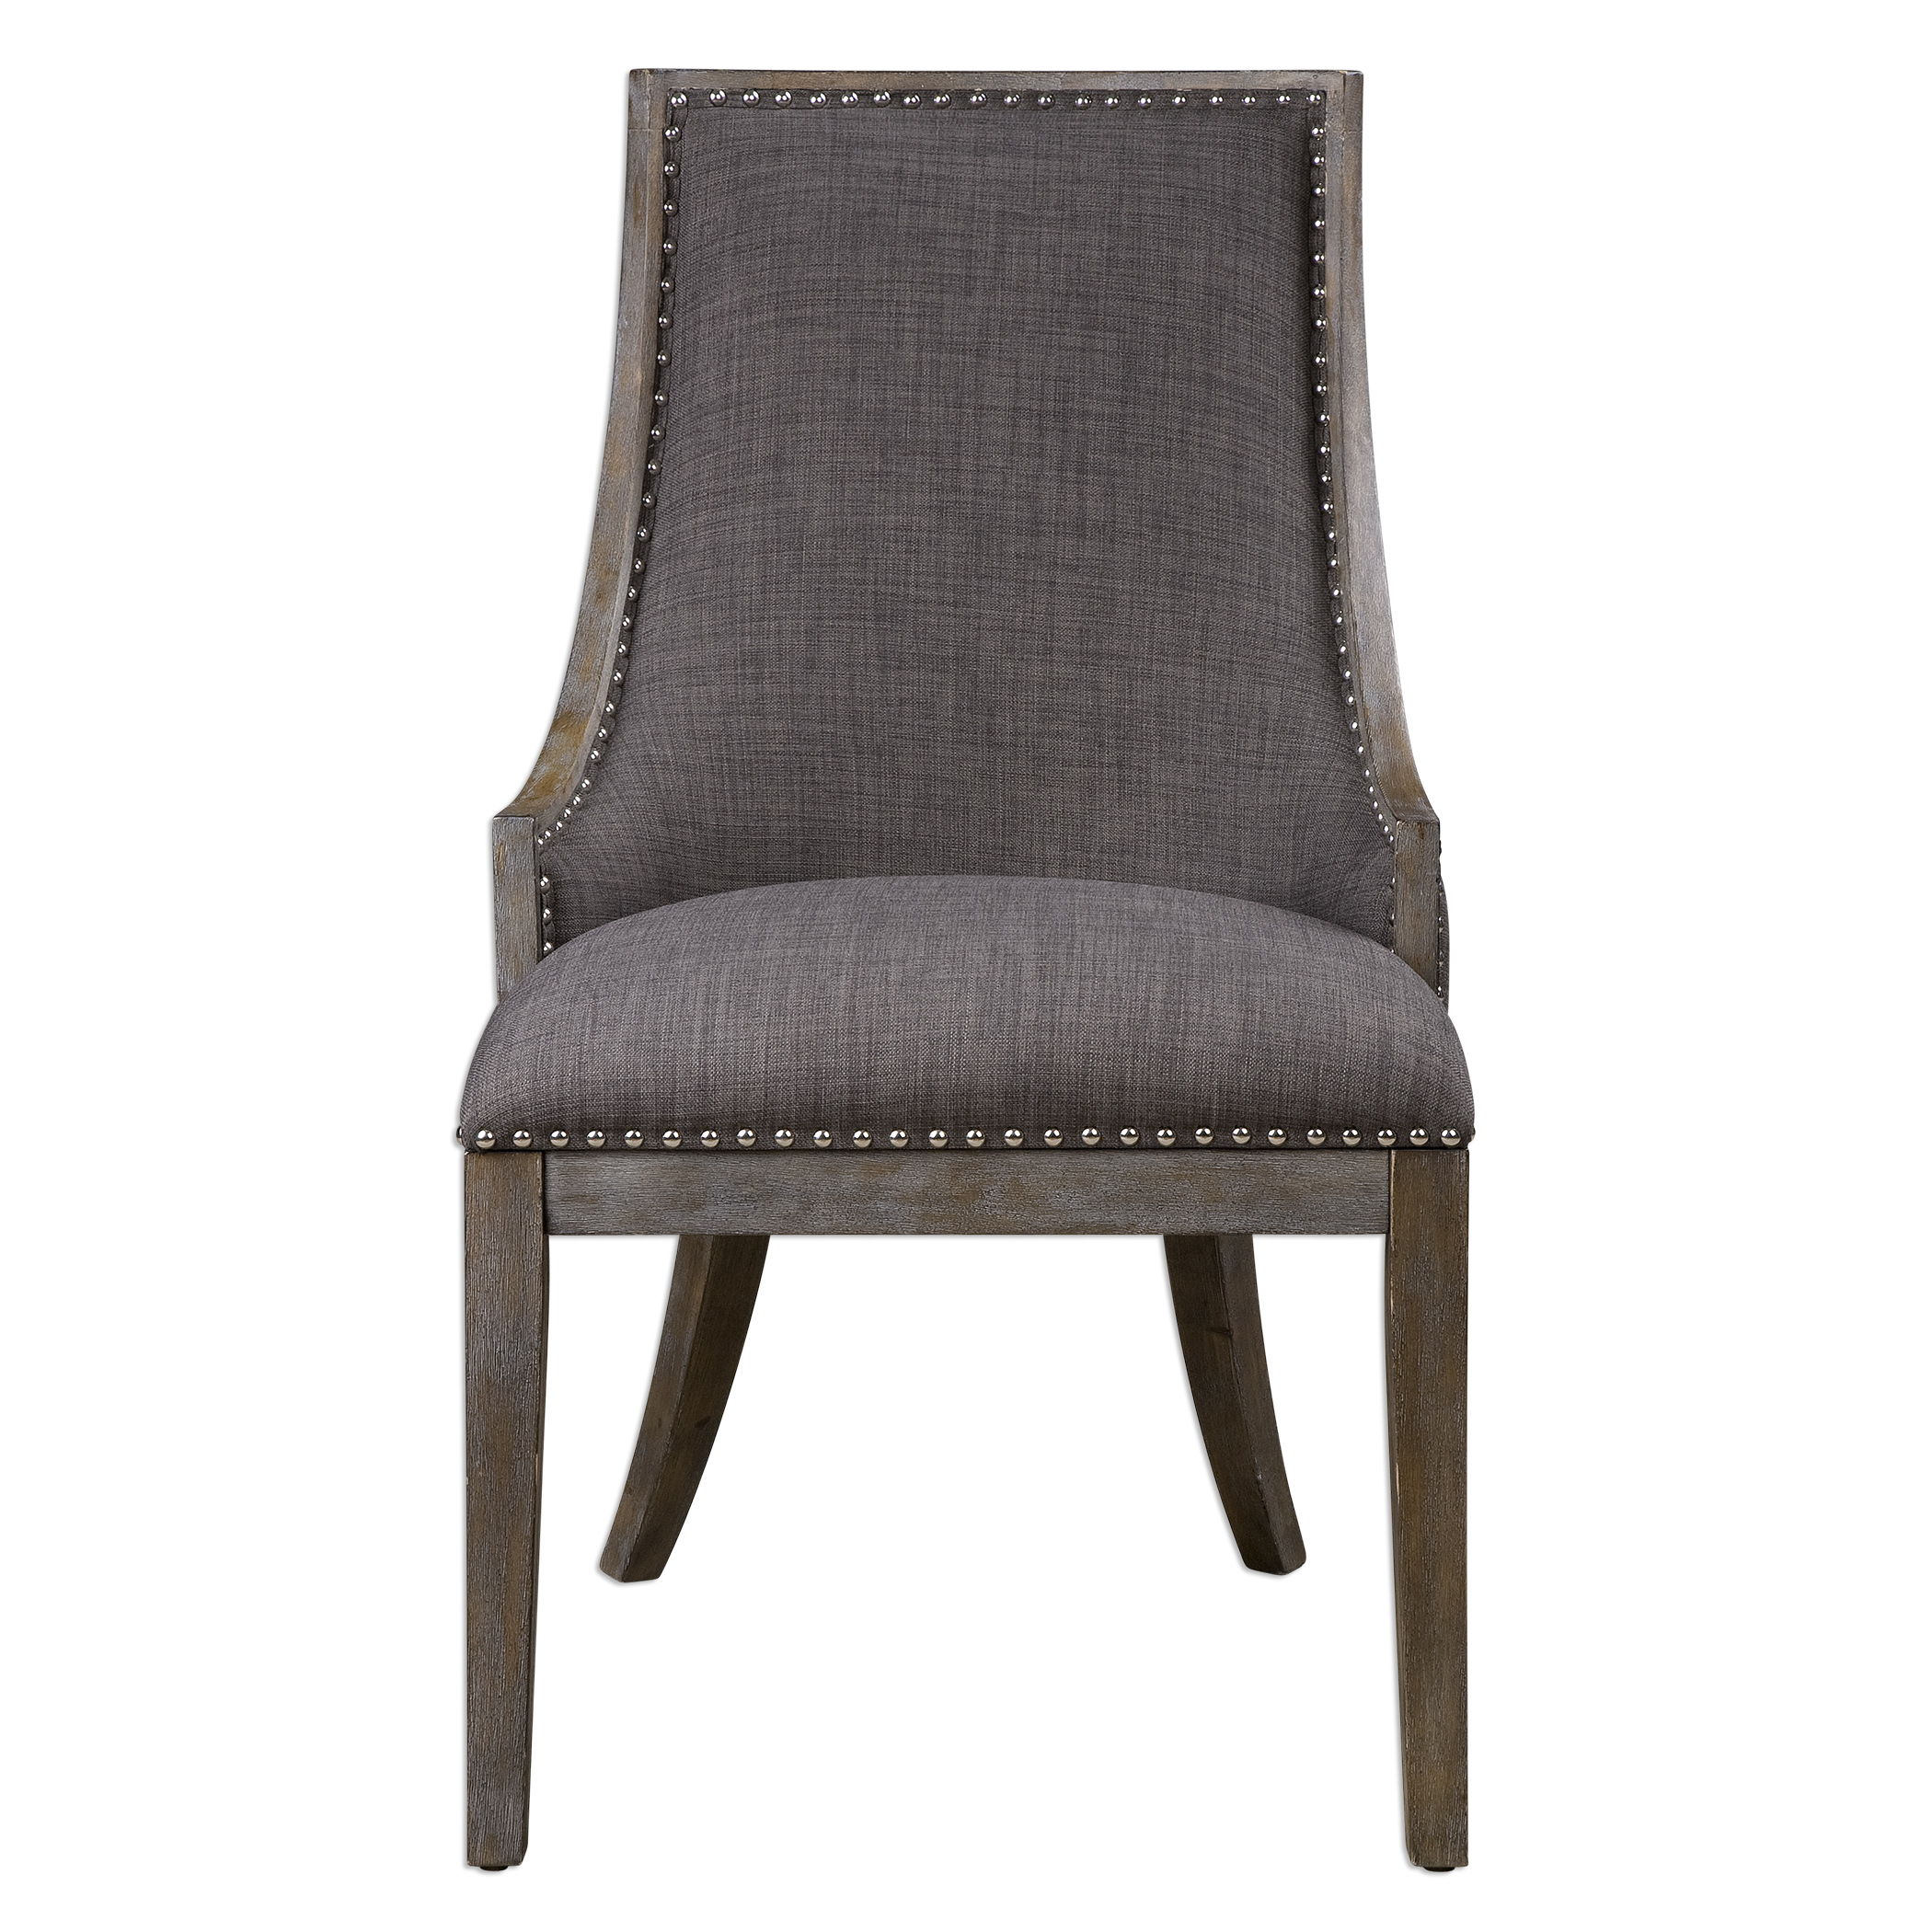 Accent Furniture - Accent Chairs Aidrian Charcoal Gray Accent Chair by Uttermost at Mueller Furniture